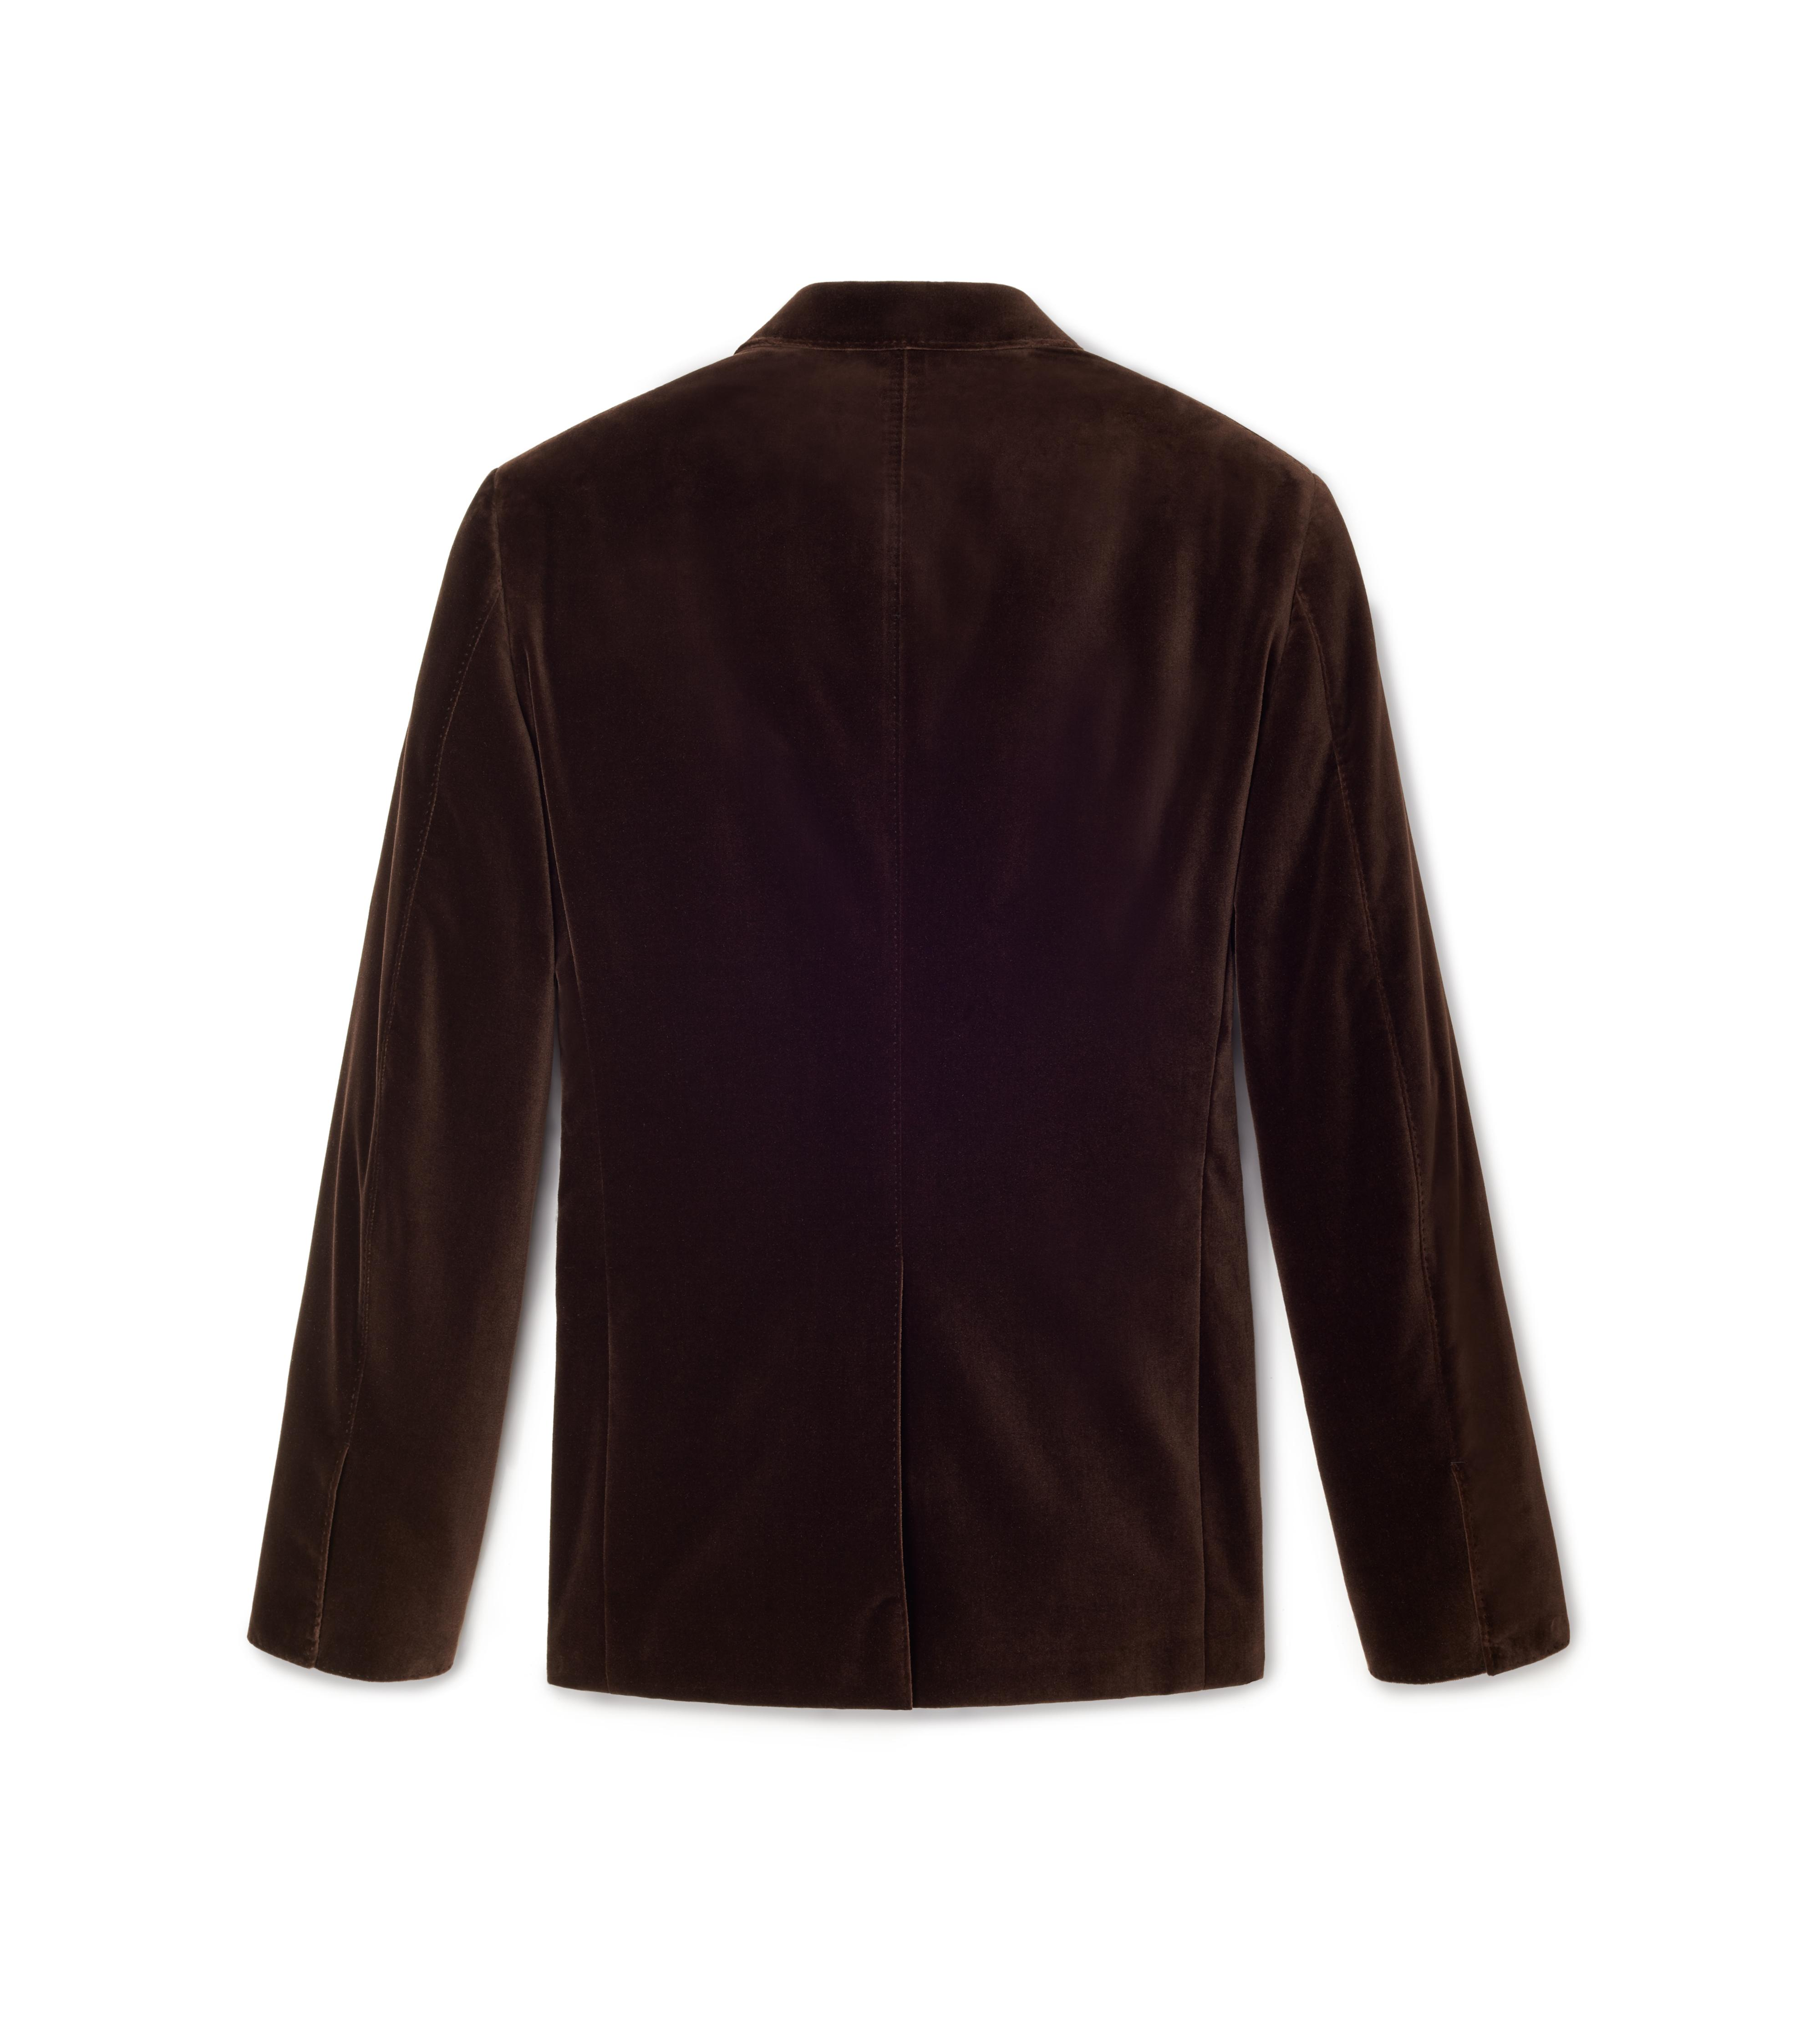 BROWN VELVET SHELTON JACKET B thumbnail